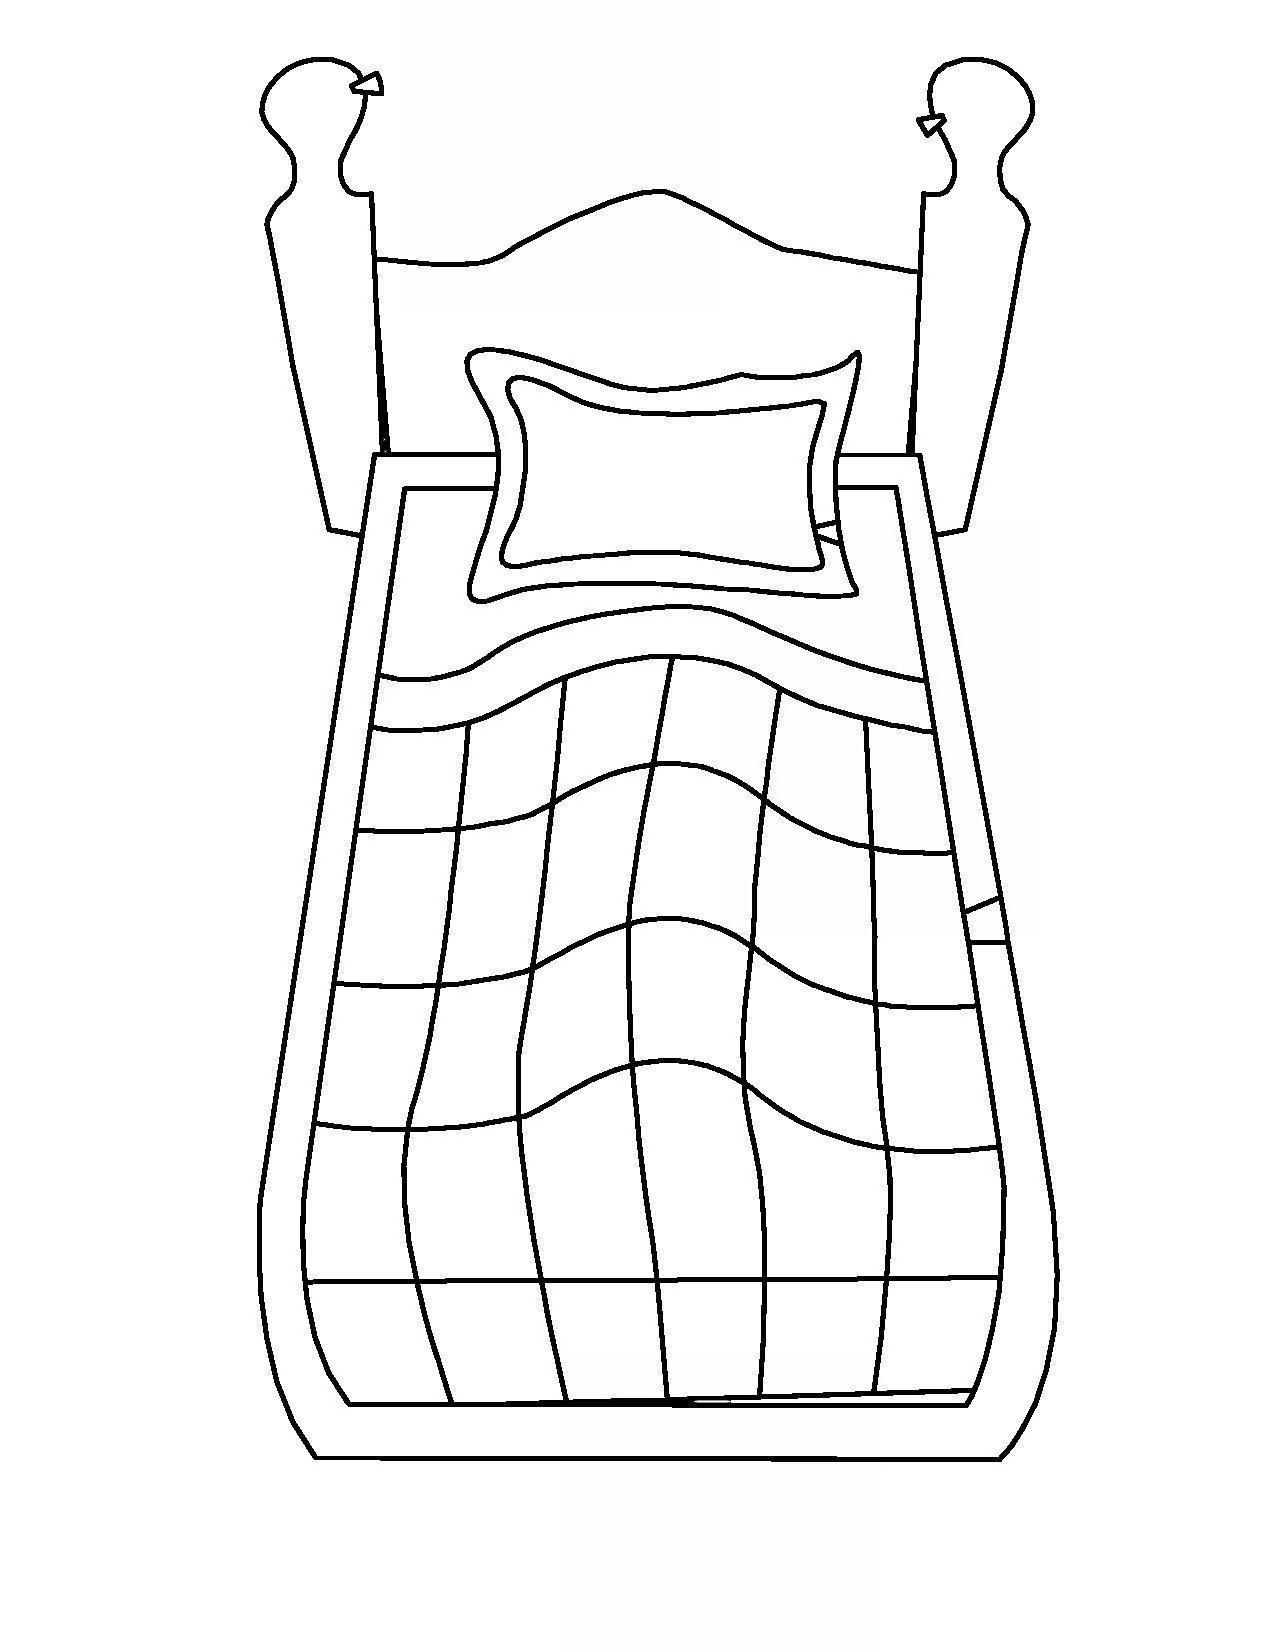 coloring page quilt elegant quilt coloring pages to print thousand of the coloring page quilt